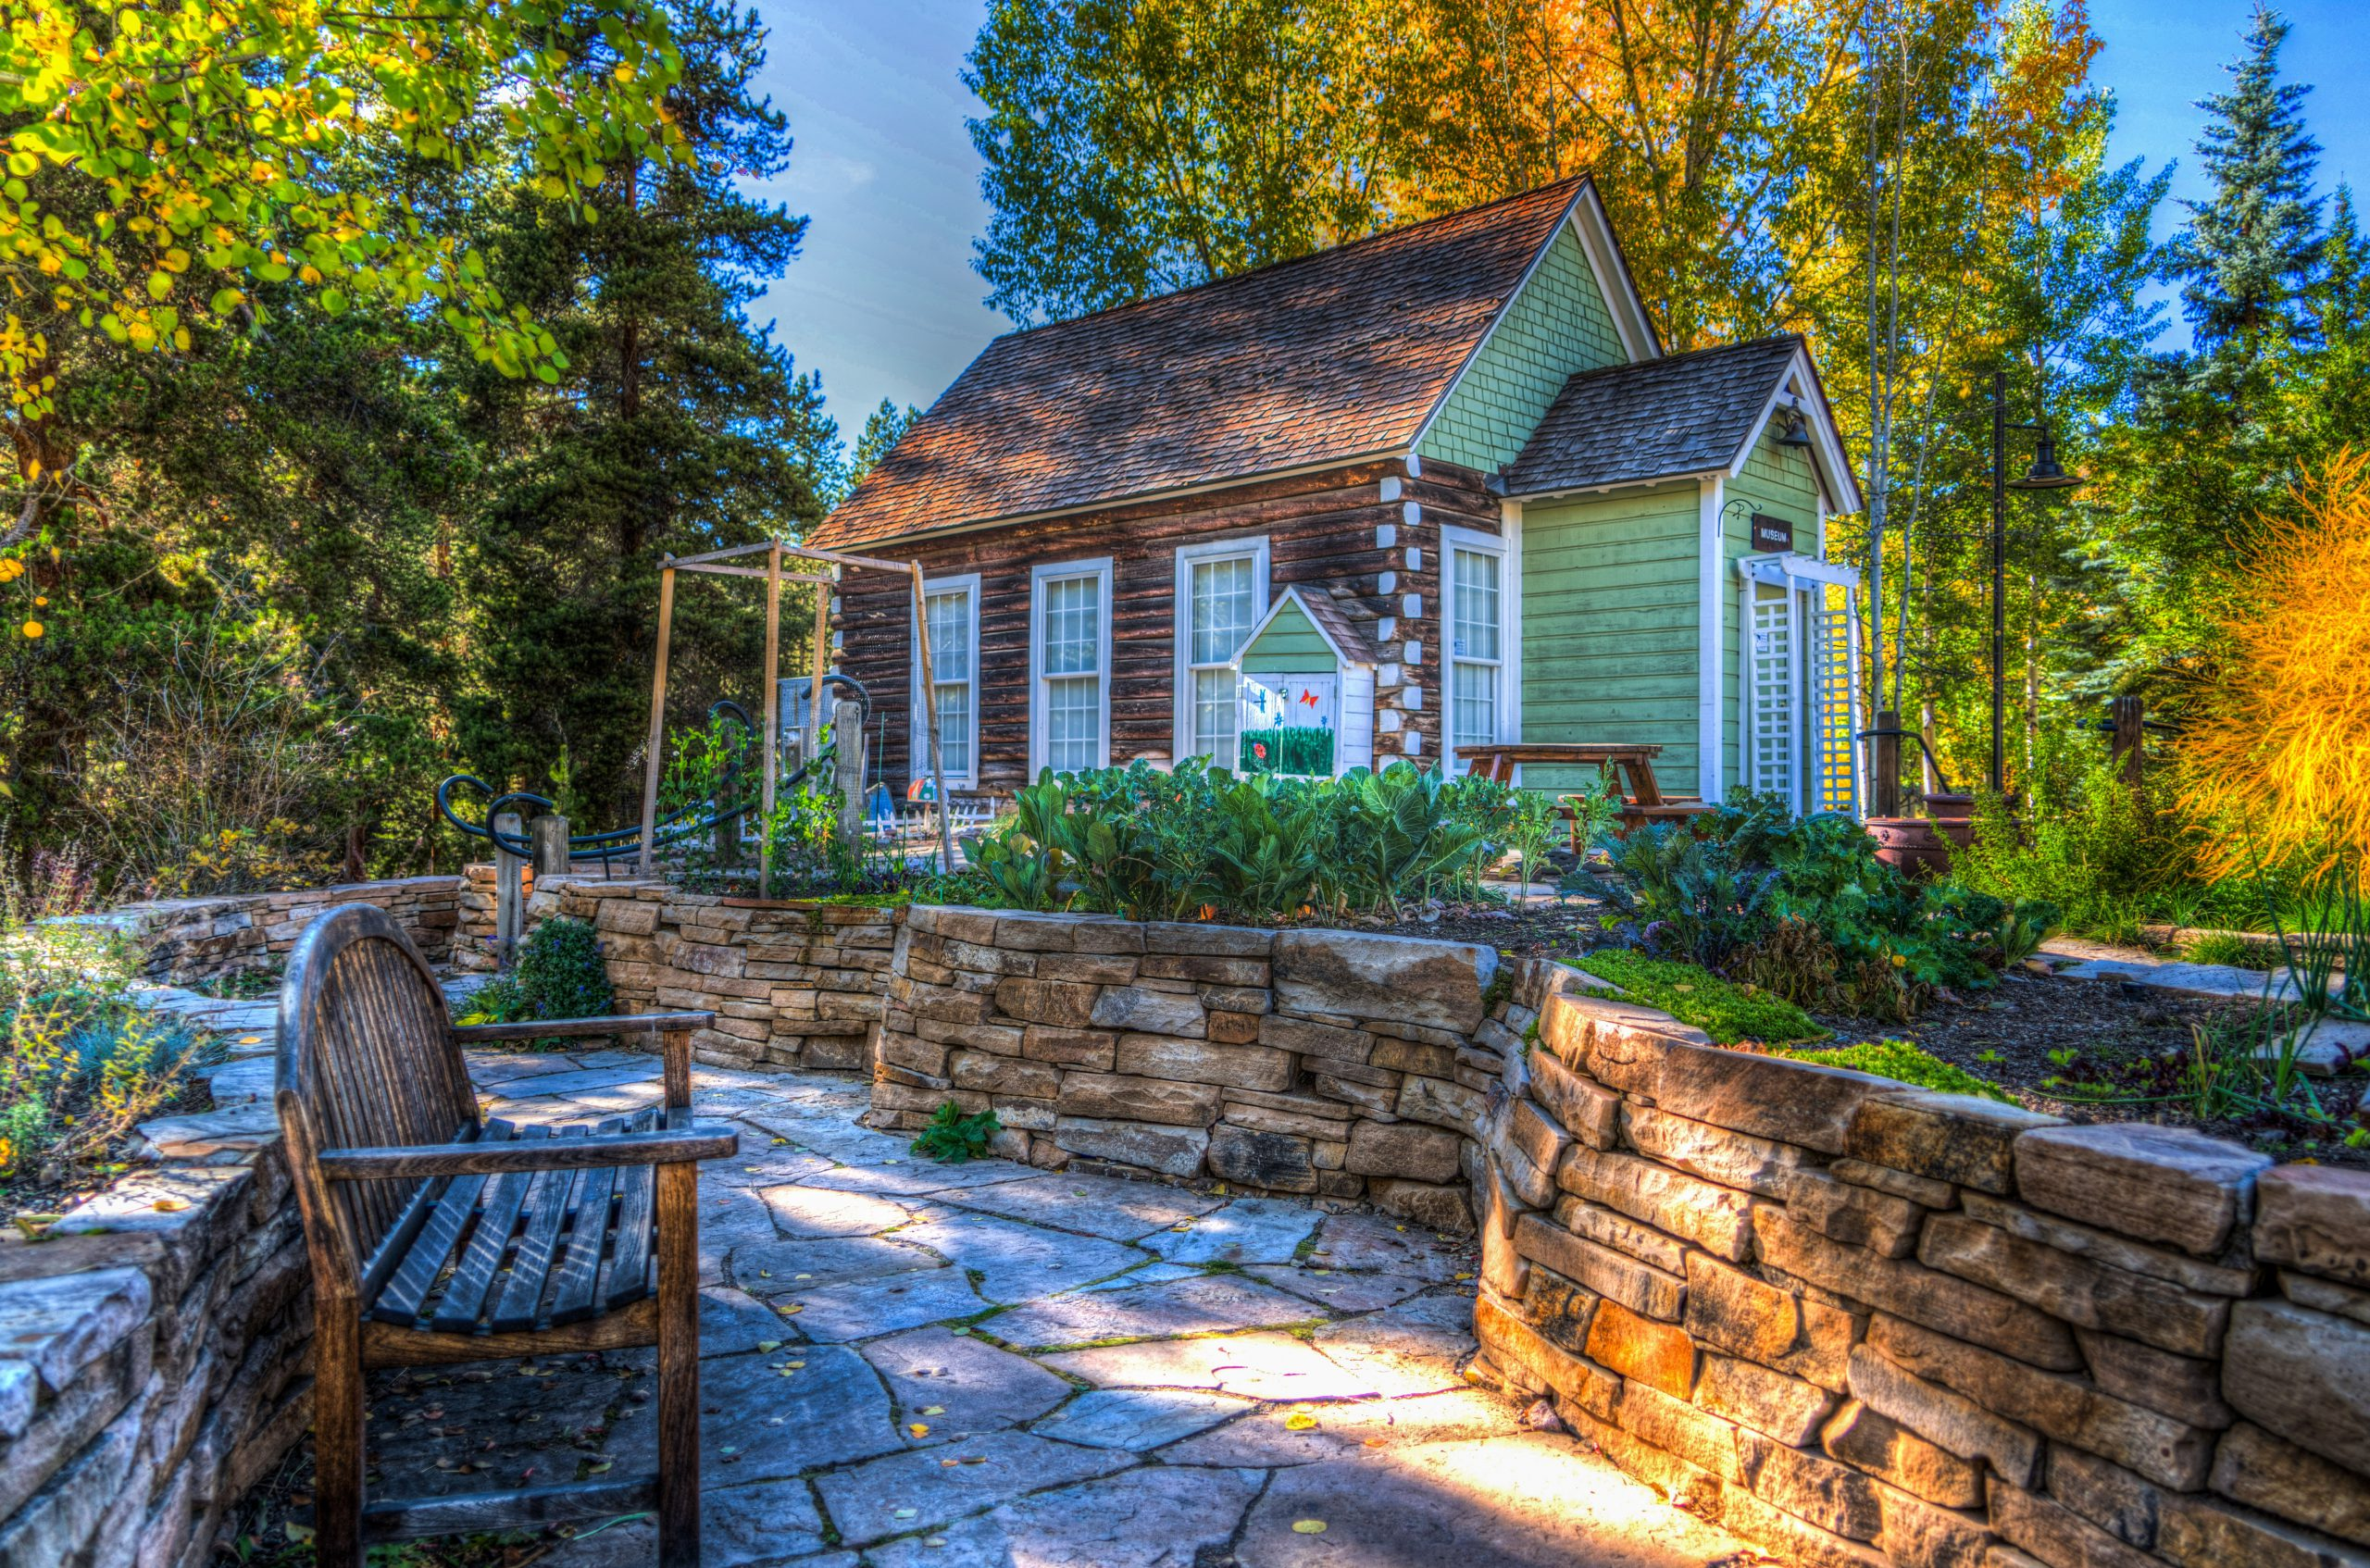 brown-and-white-wooden-house-on-green-forest-206673 (2)